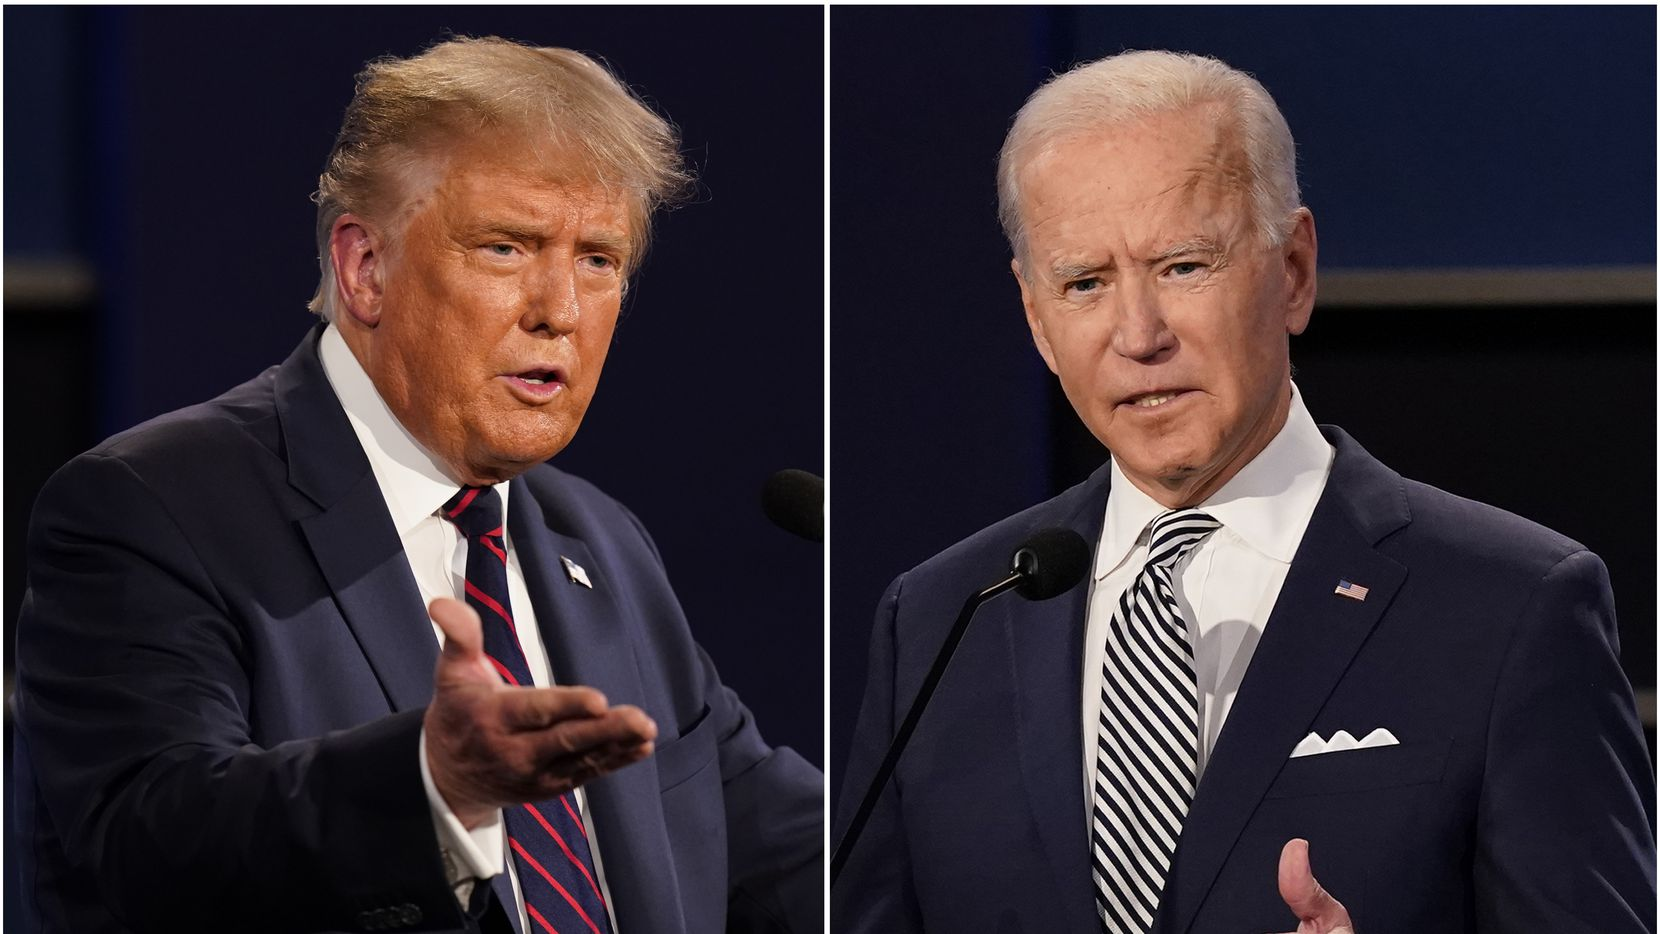 President Donald Trump and Democratic presidential candidate Joe Biden